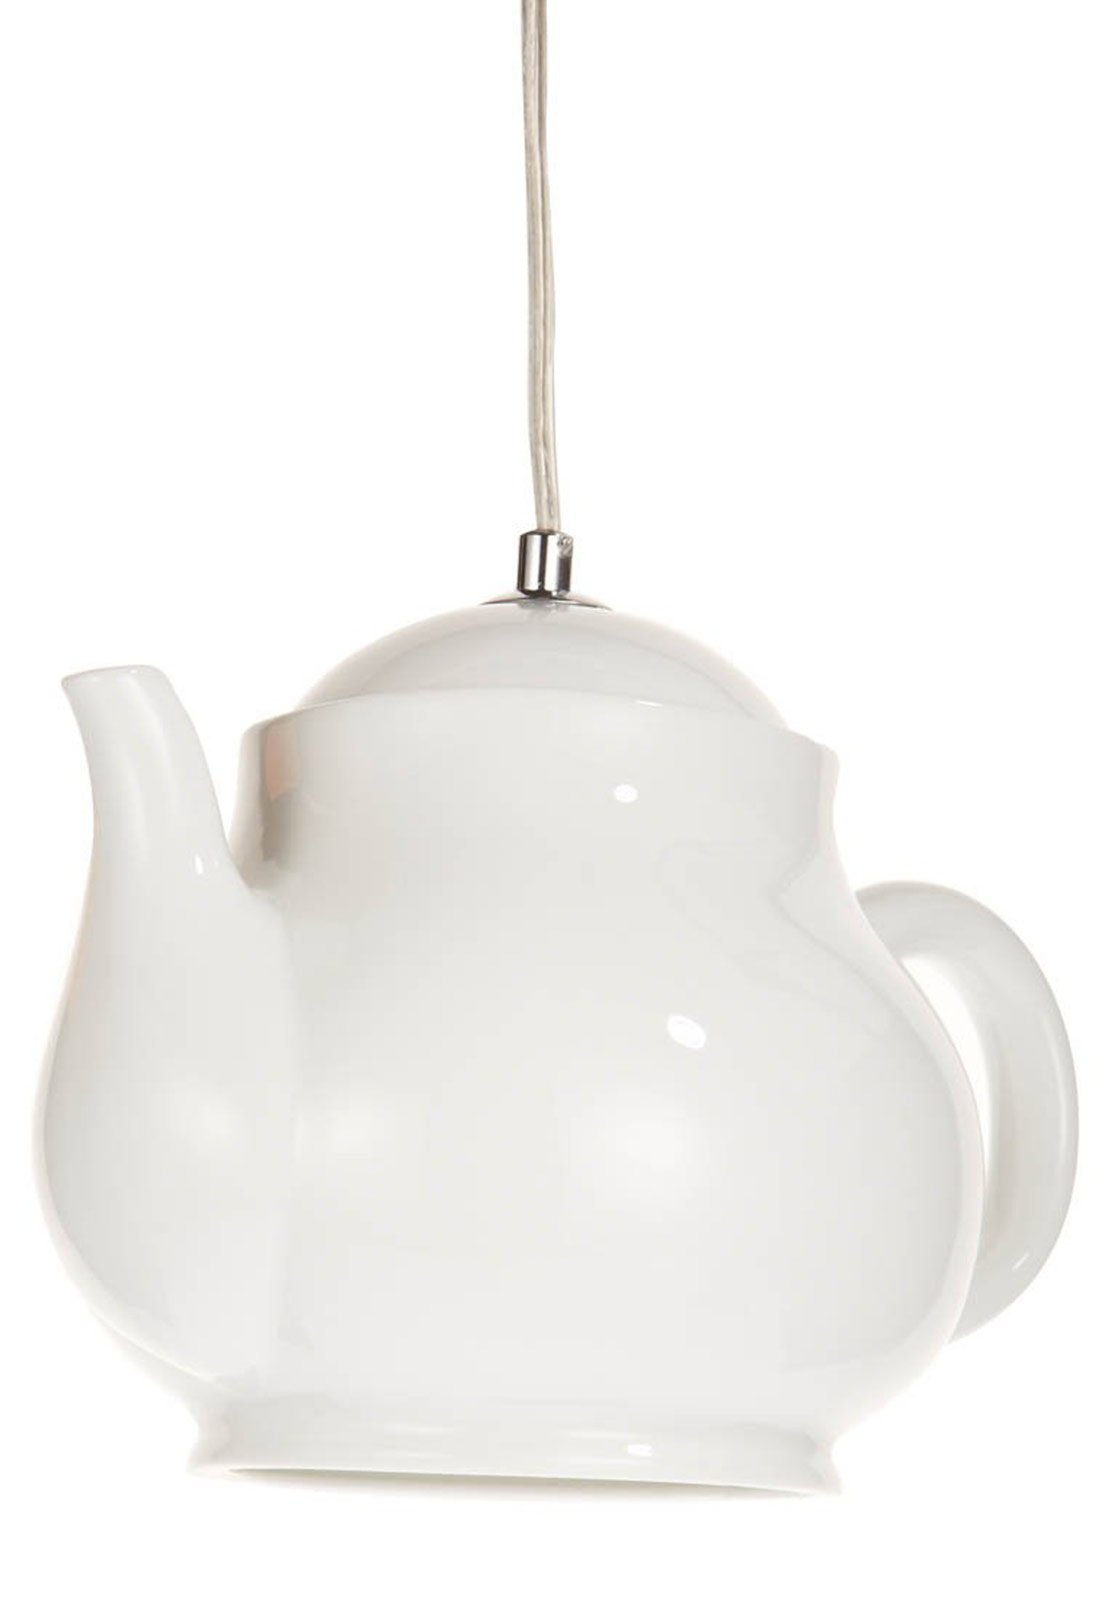 Lampadari mercatone uno for Accessori lampadari